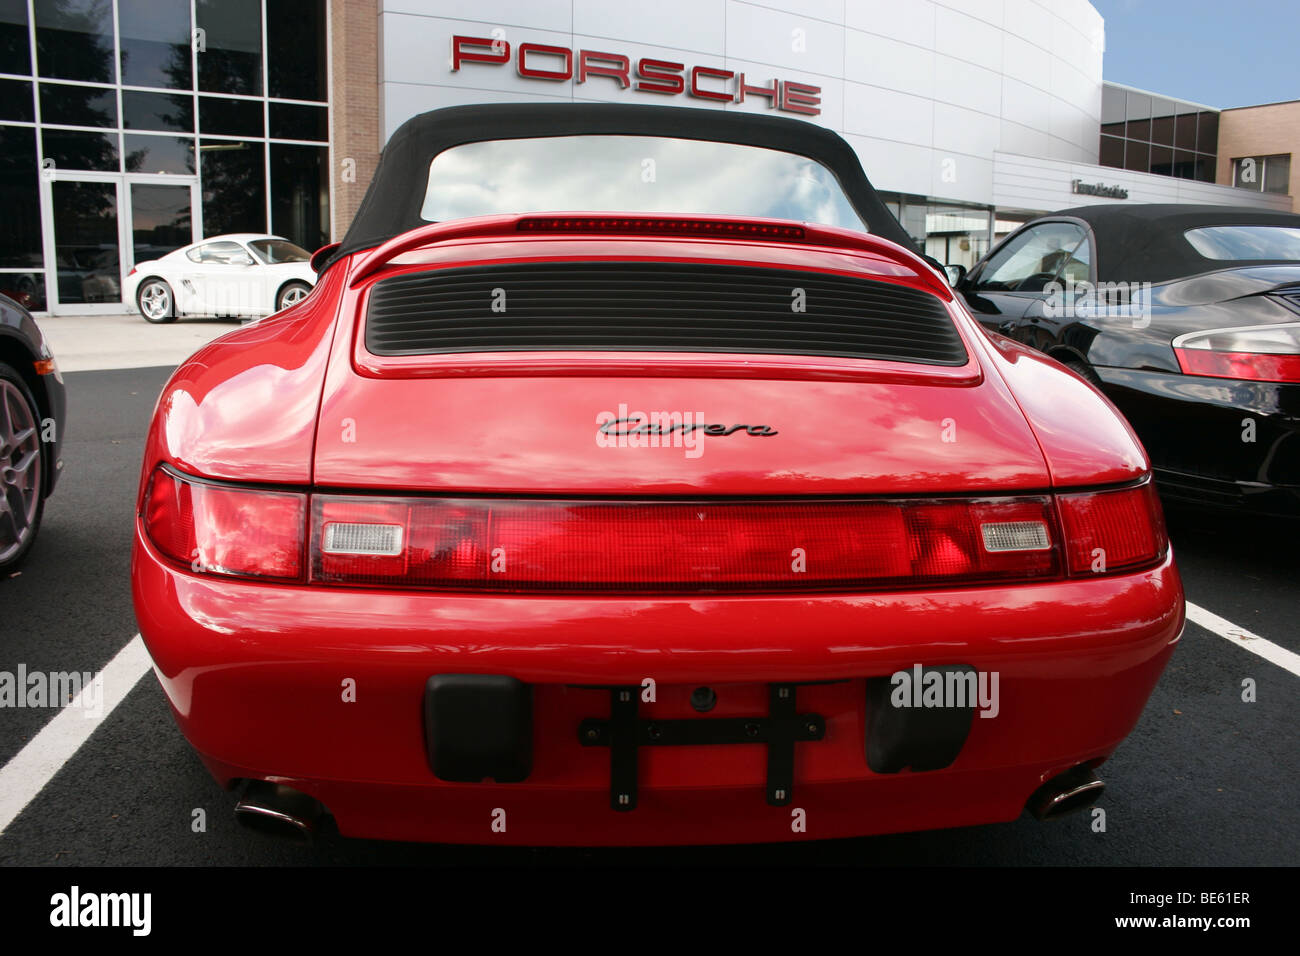 Porsche Dealers In Va >> Porsche Dealership Stock Photos Porsche Dealership Stock